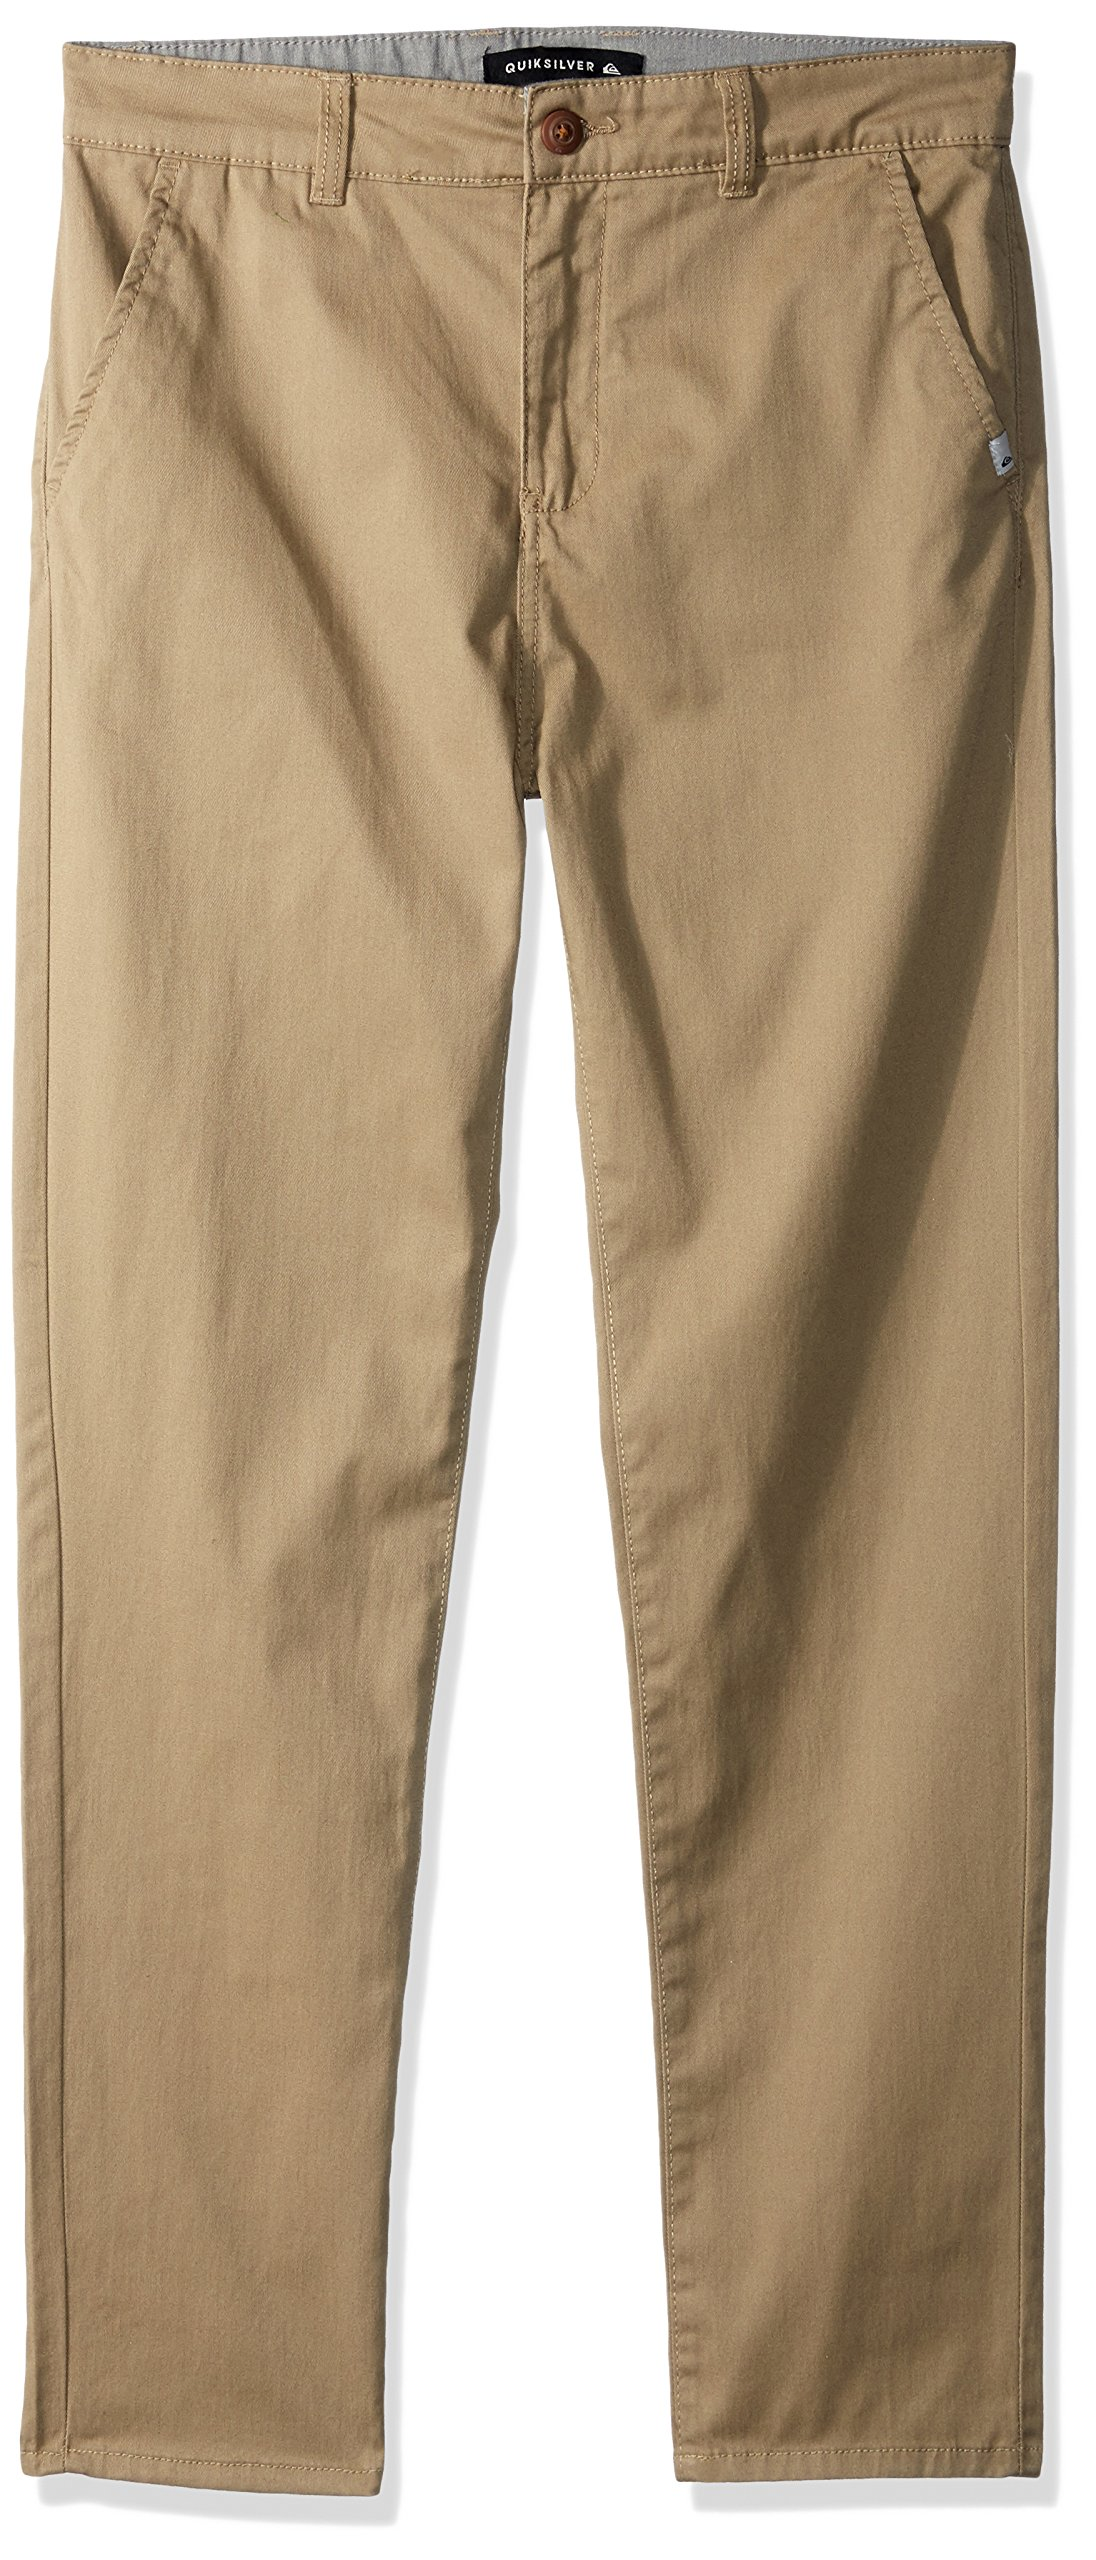 Quiksilver Boys' Big Everyday Union Youth Pants, Elmwood, 30/16 by Quiksilver (Image #1)